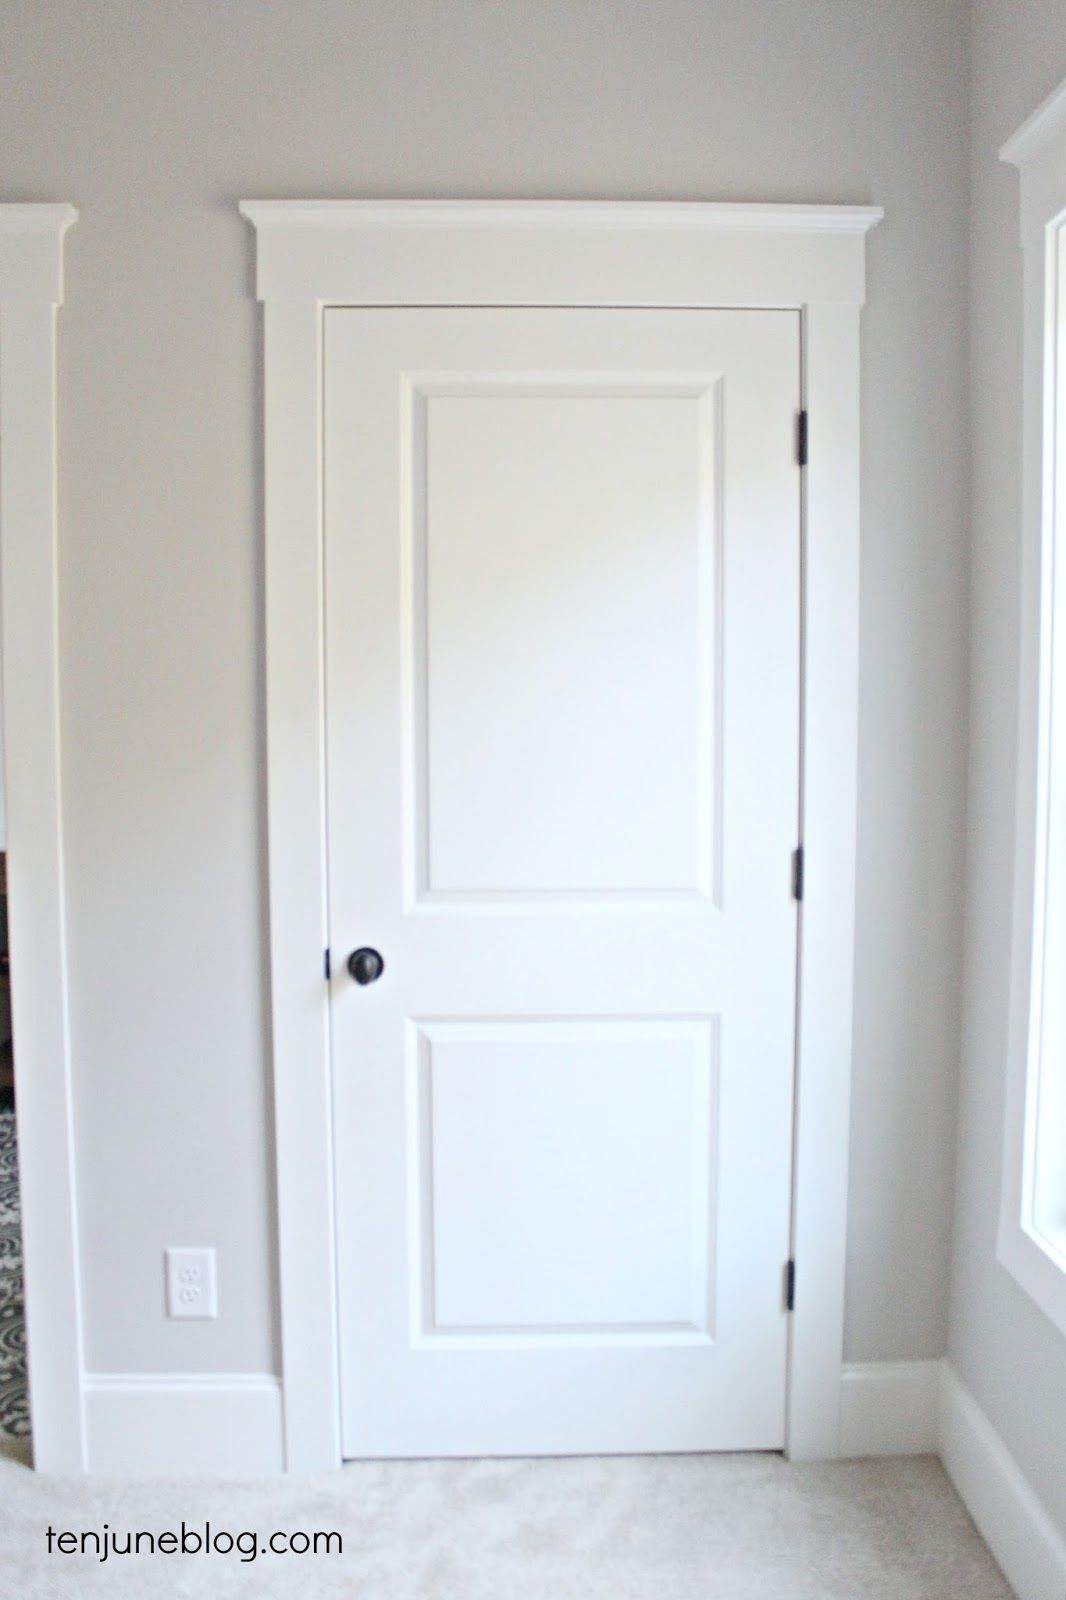 5 Stylish Contemporary Interior Doors Ideas Farmhouse Interior Doors French Doors Interior Farmhouse Interior